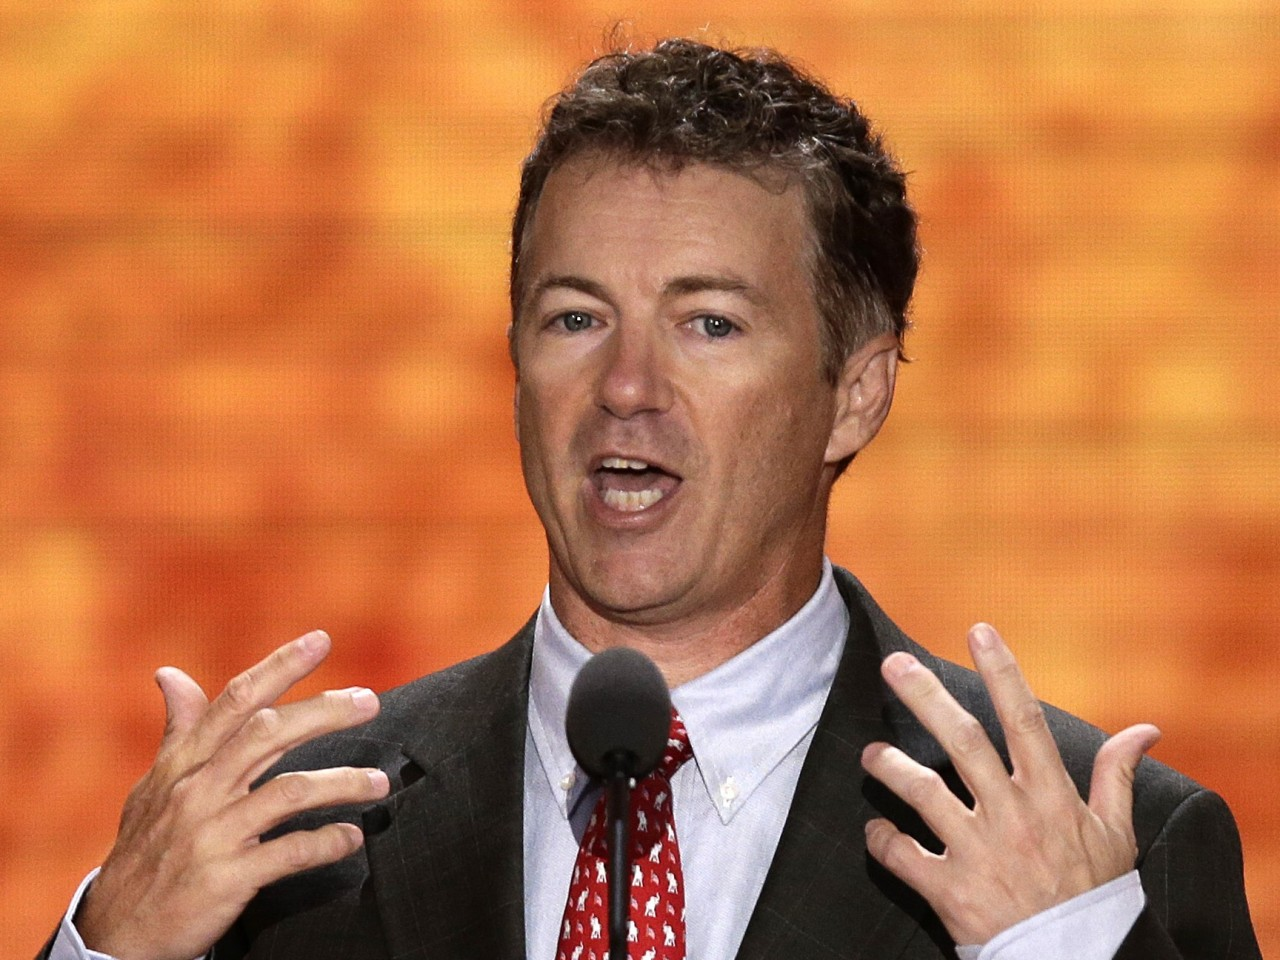 rand paul faces plagiarism allegations